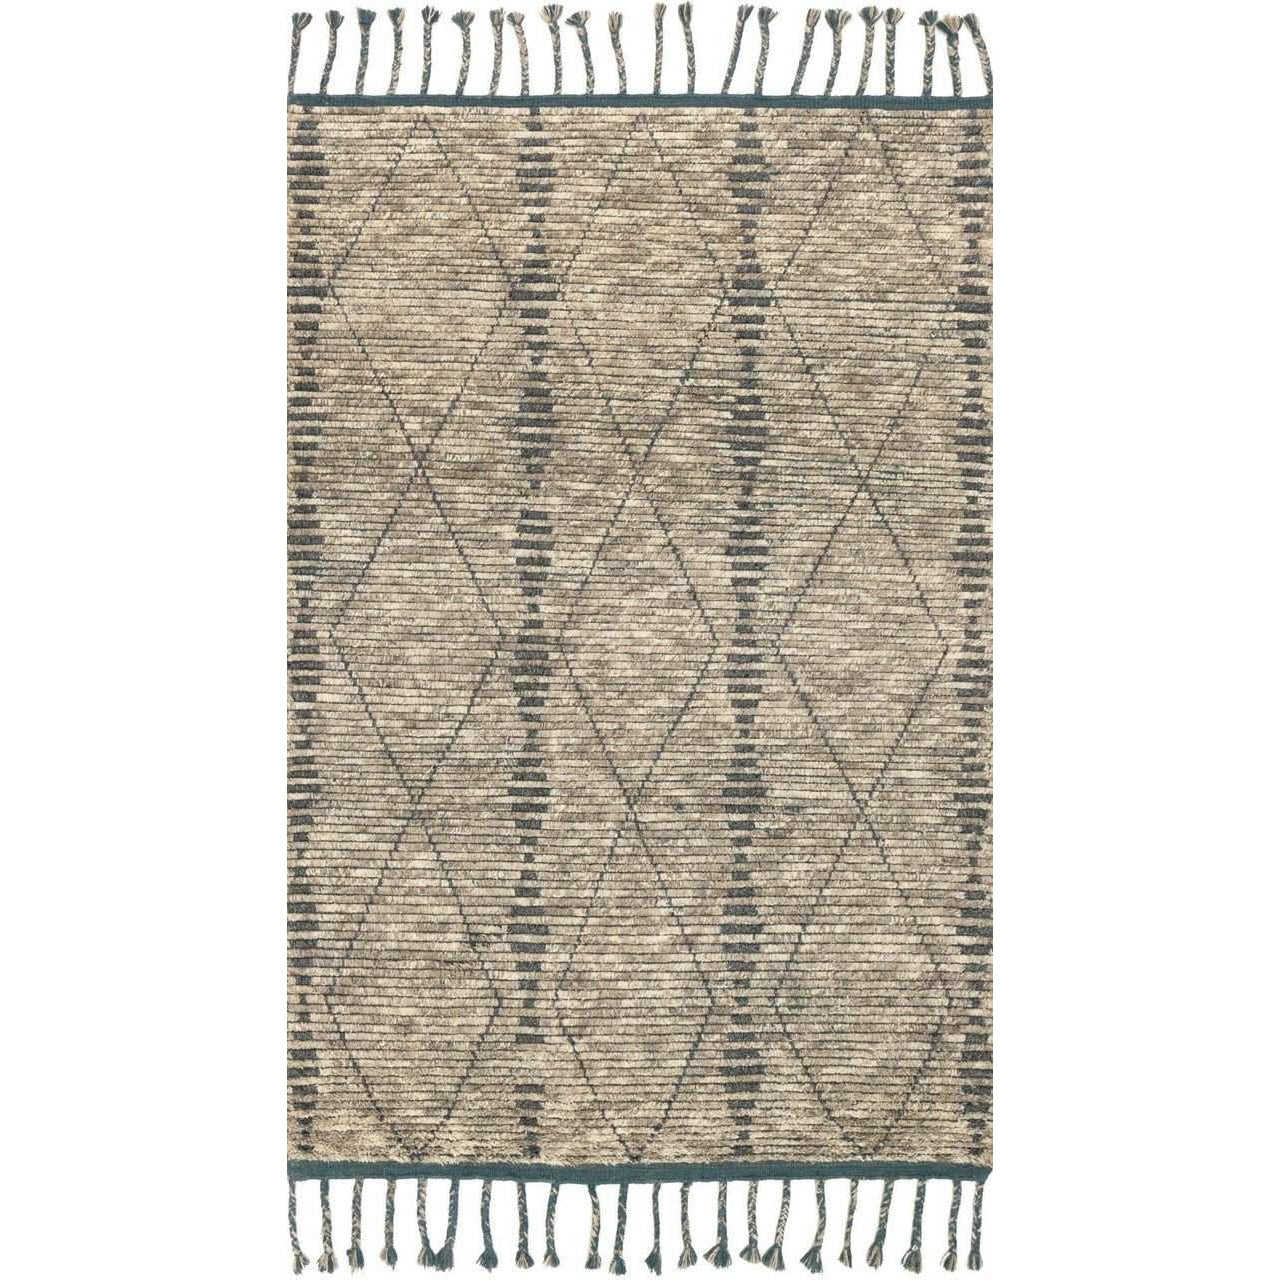 Joanna Gaines Of Magnolia Home Tulum Rug Collection - Stone / Blue